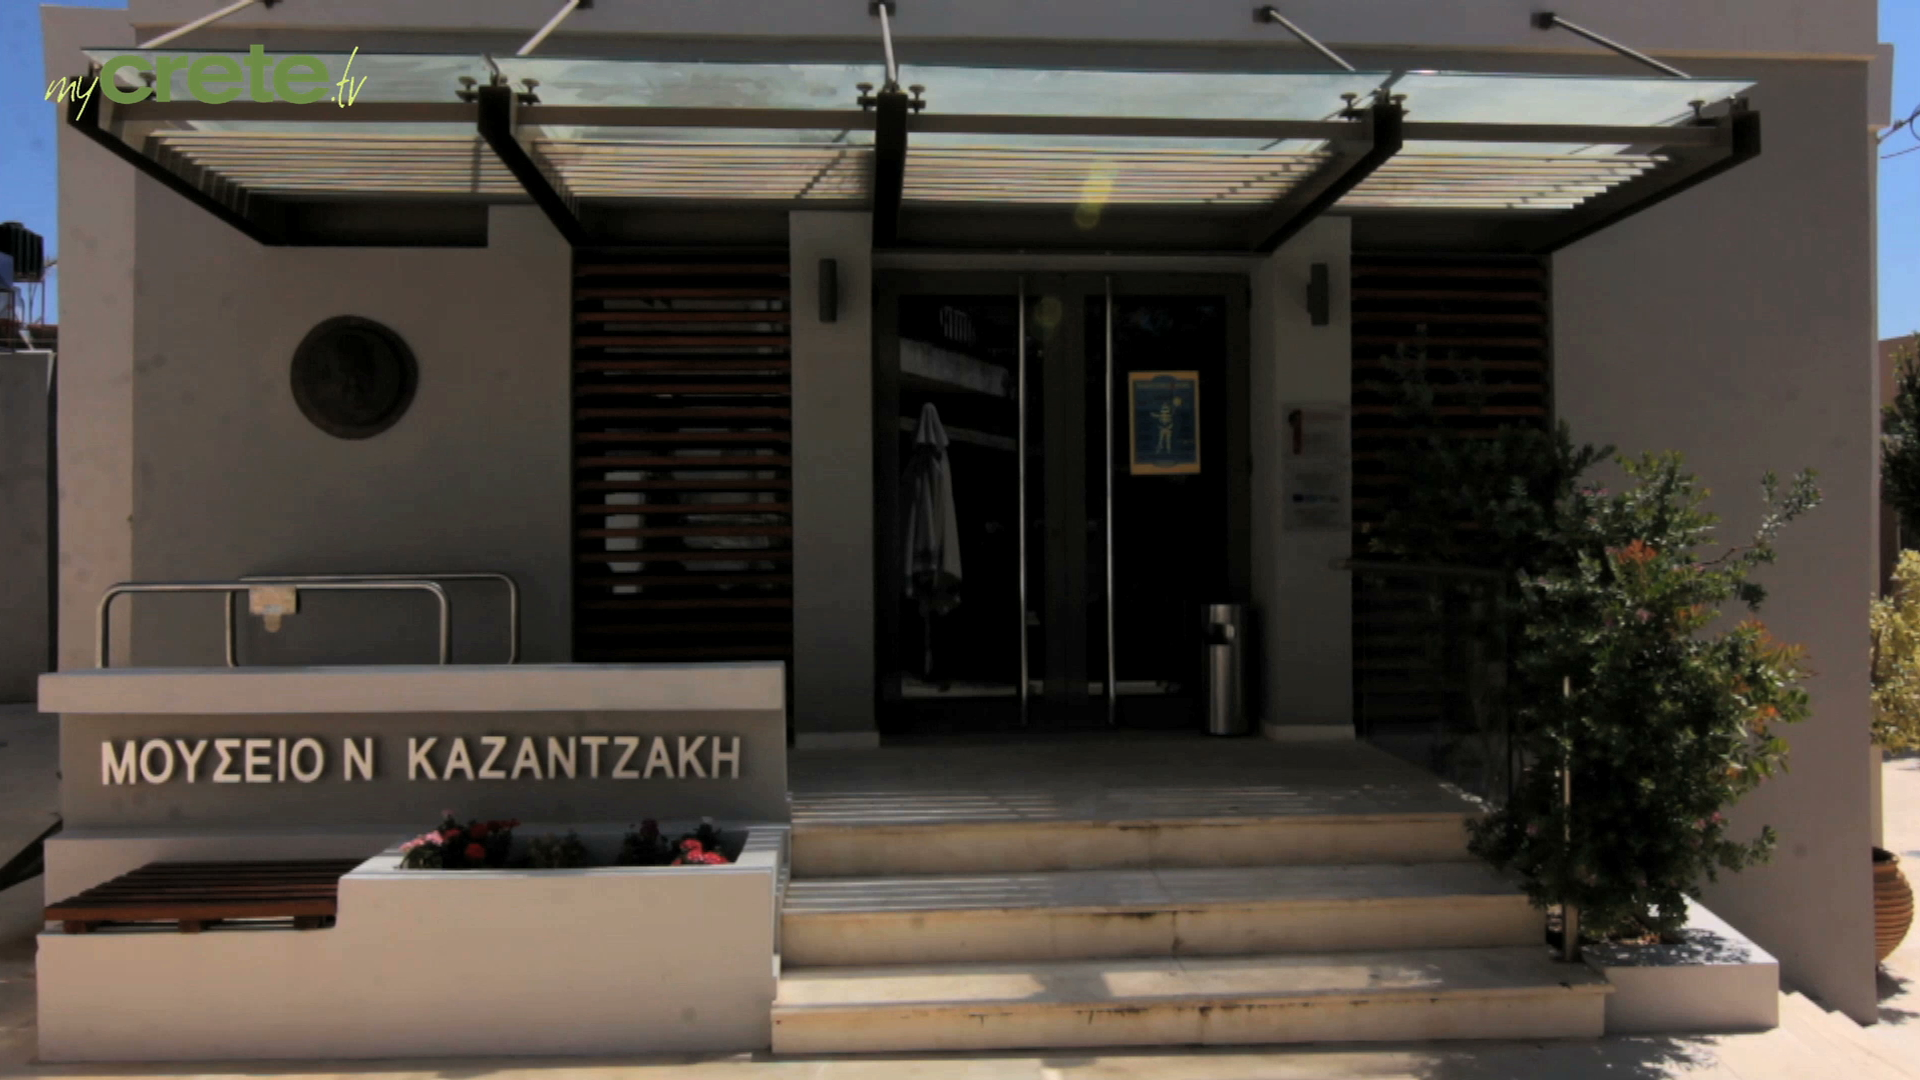 The Museum of Nikos Kazantzakis